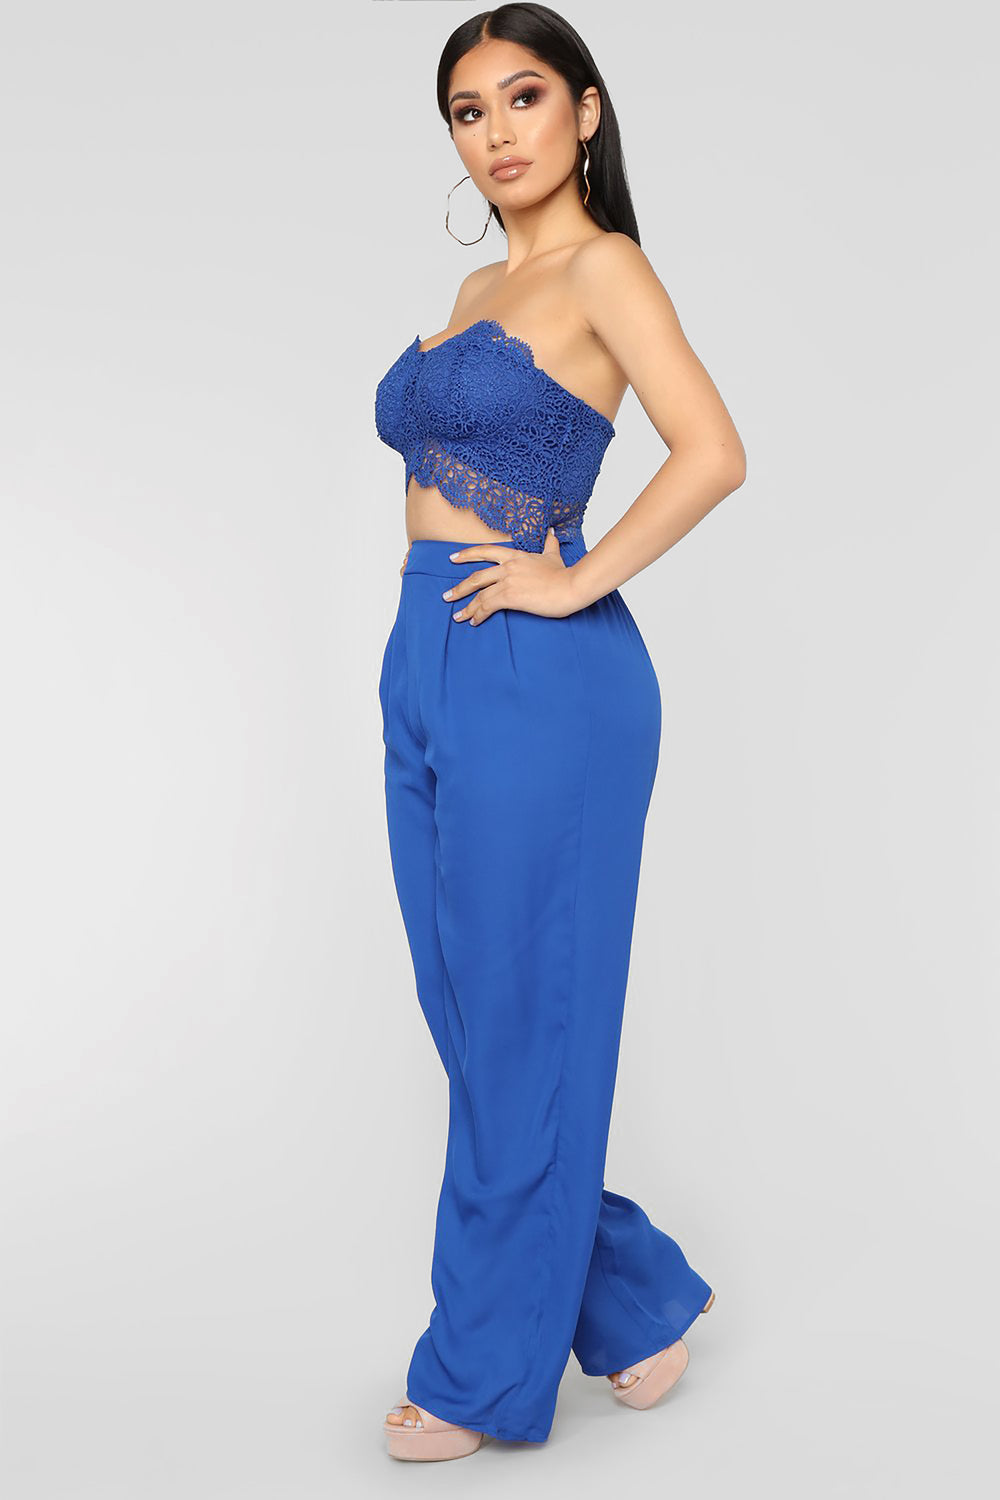 Love Quote Lace Jumpsuit - Royal